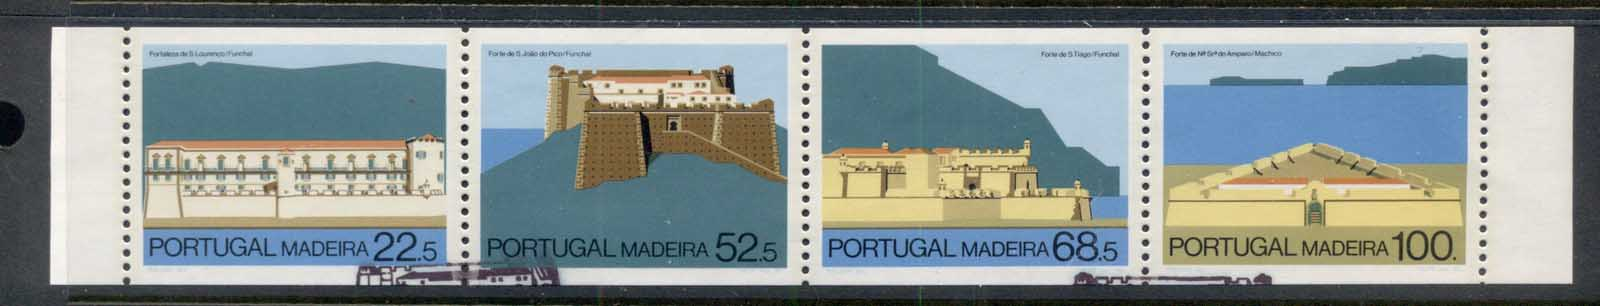 Madeira 1986 Forts in Funchal & Machico booklet pane FU